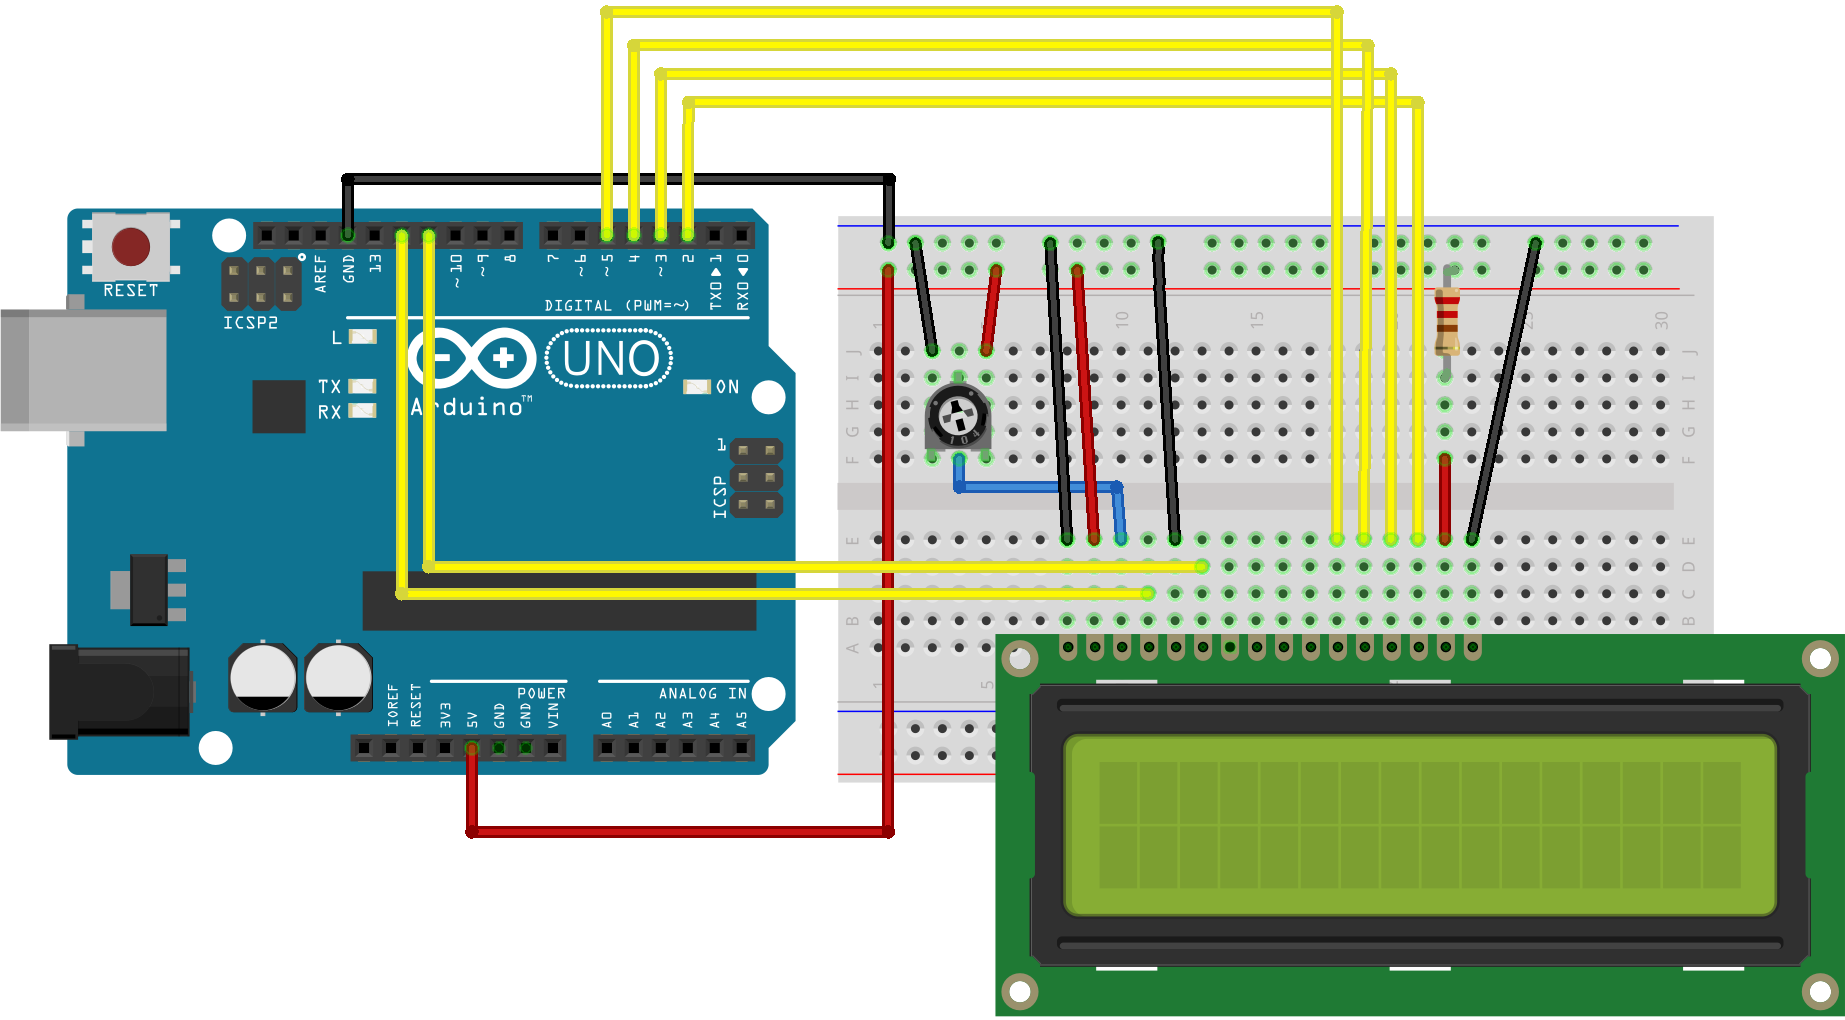 Index php besides Lcd Matrix Display Shield Interface With Arduino Library likewise 16x2 Lcd Module Datasheet besides Custom 30 Pin Ribbon Cable Lvds 60222366561 besides README. on 12 pin lcd pinout